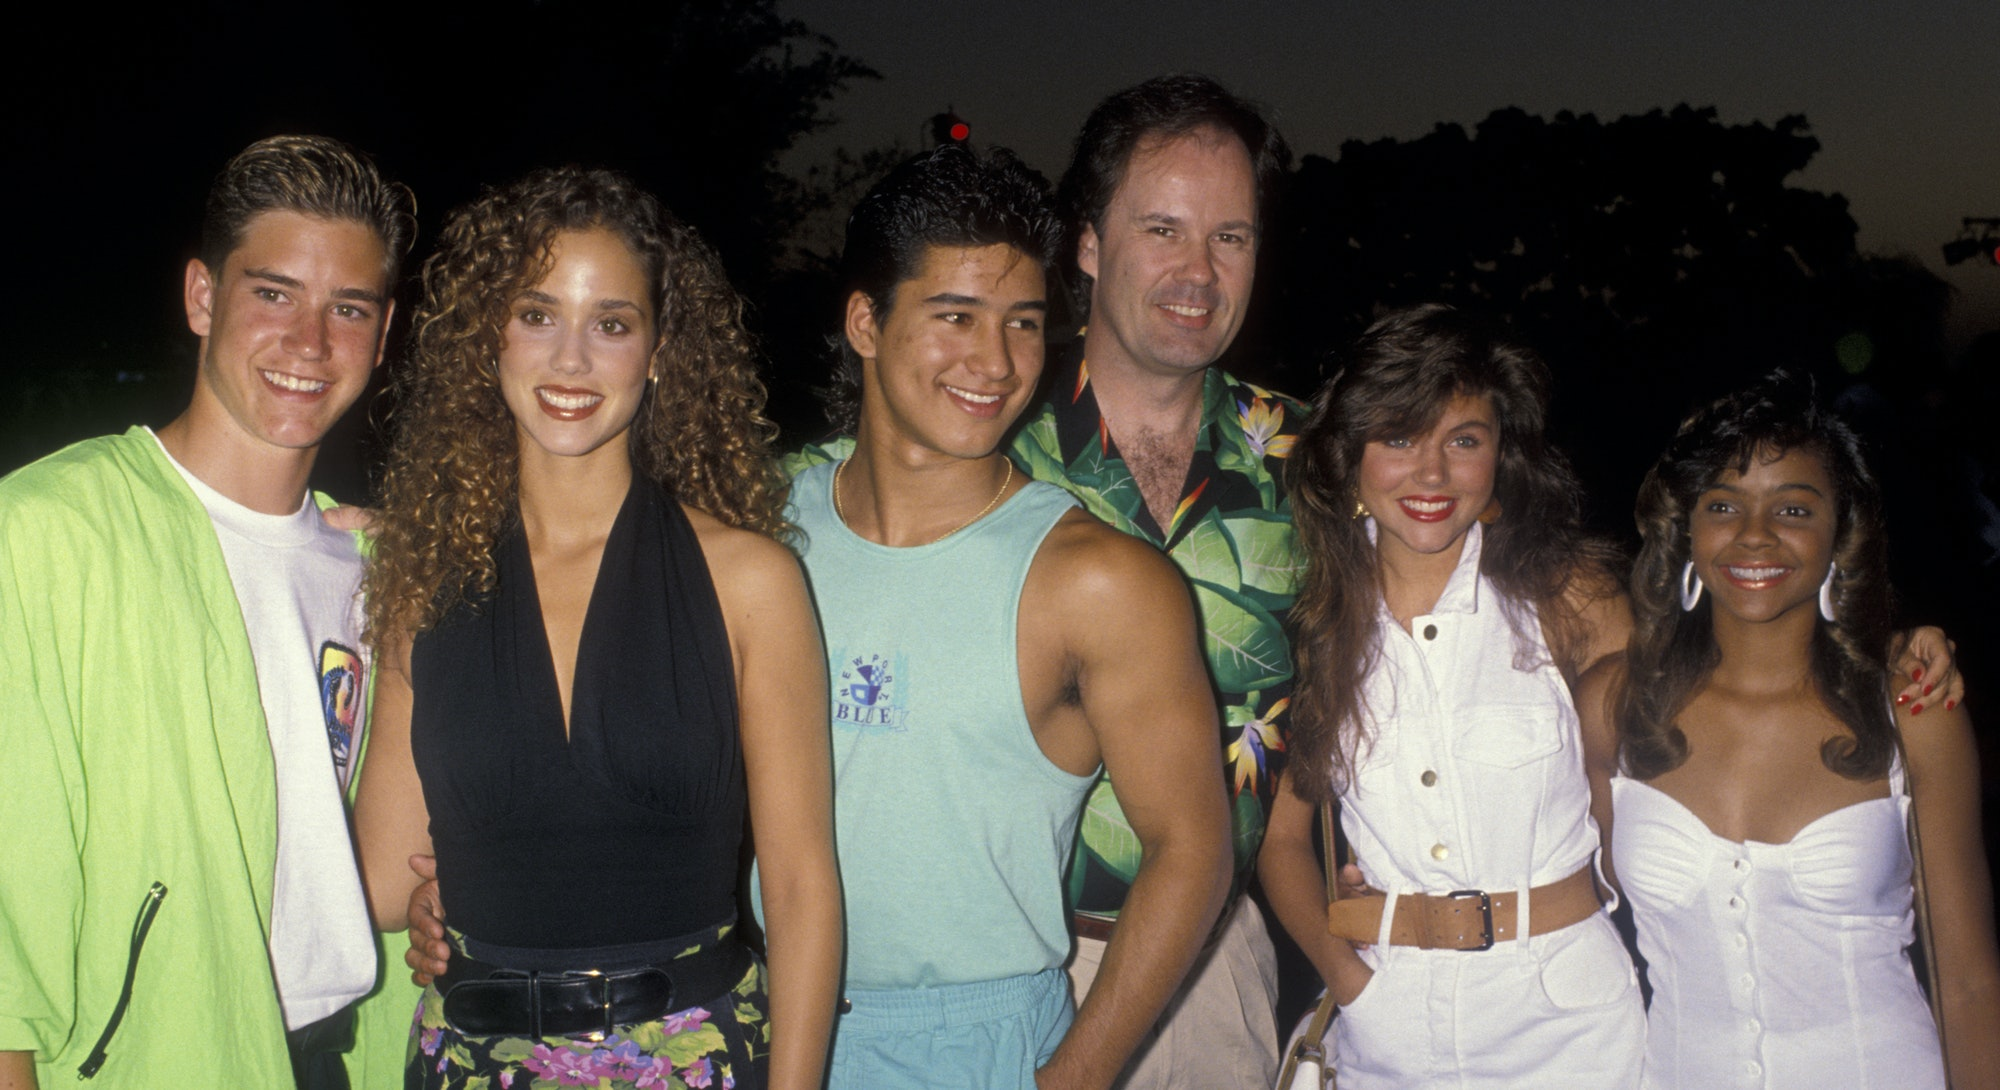 'Saved by the Bell' was a beloved sitcom in the early '90s that followed the lives of high school st...